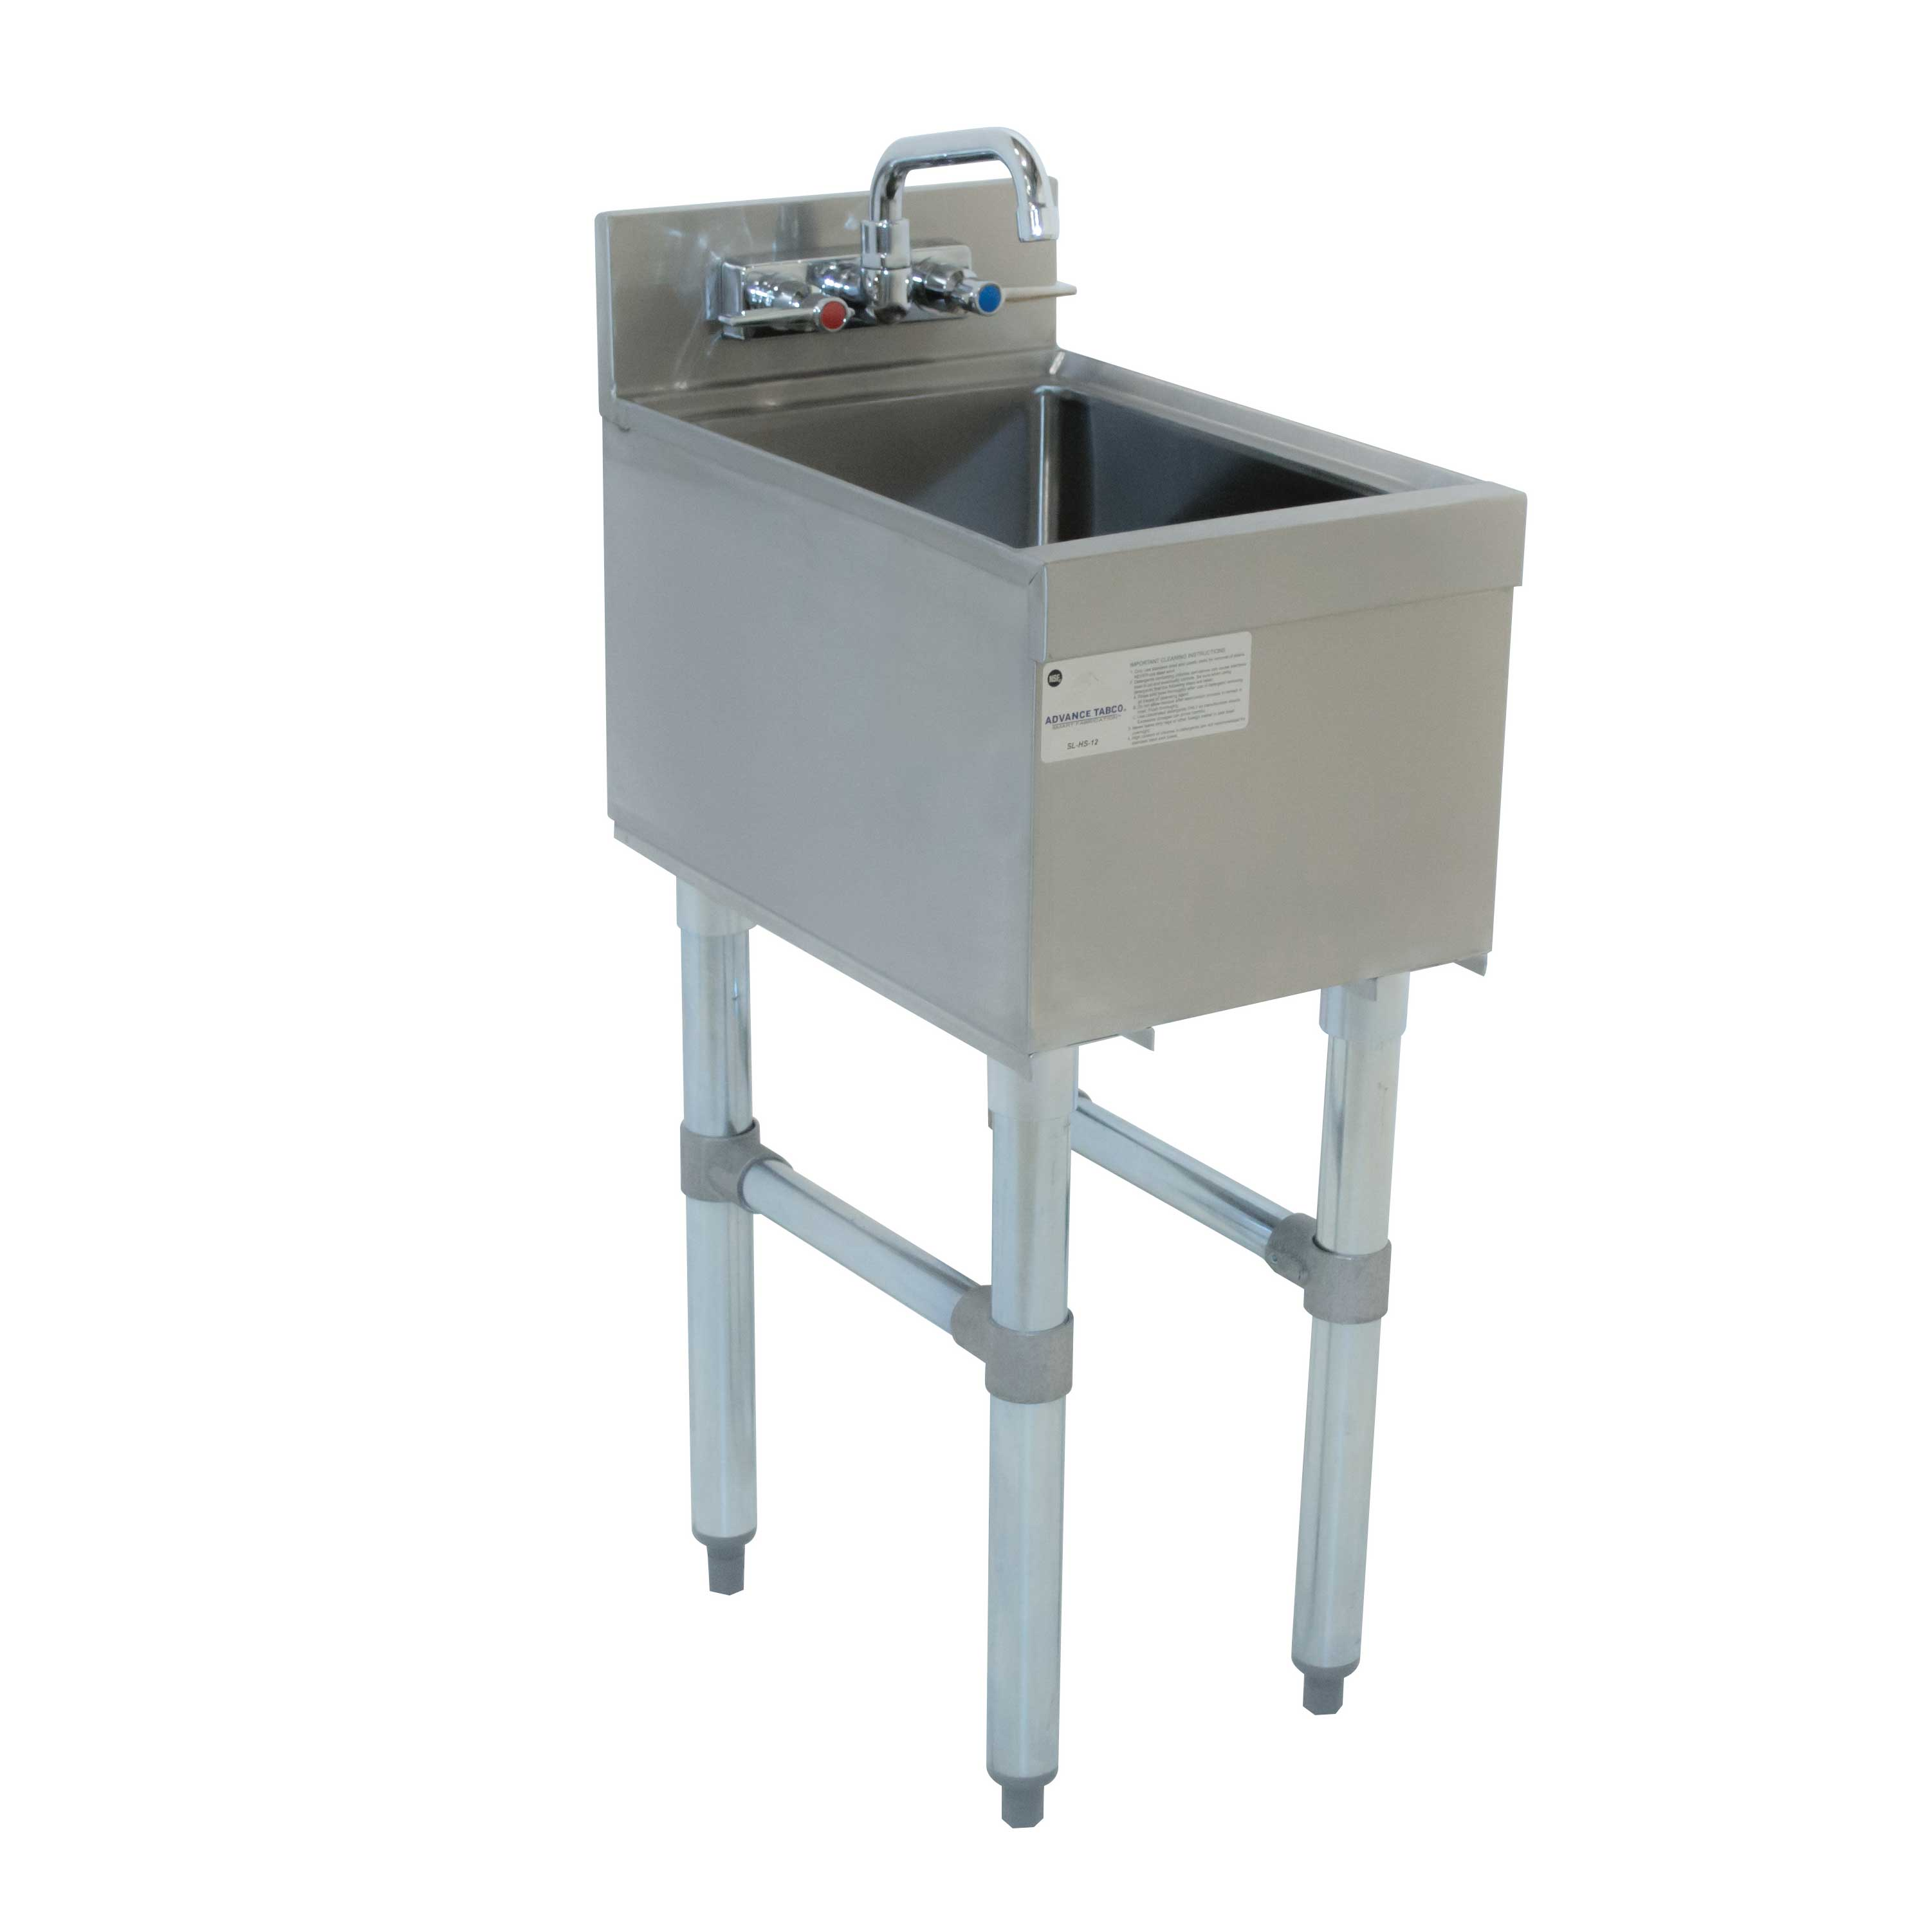 Advance Tabco SL-HS-15-X underbar hand sink unit